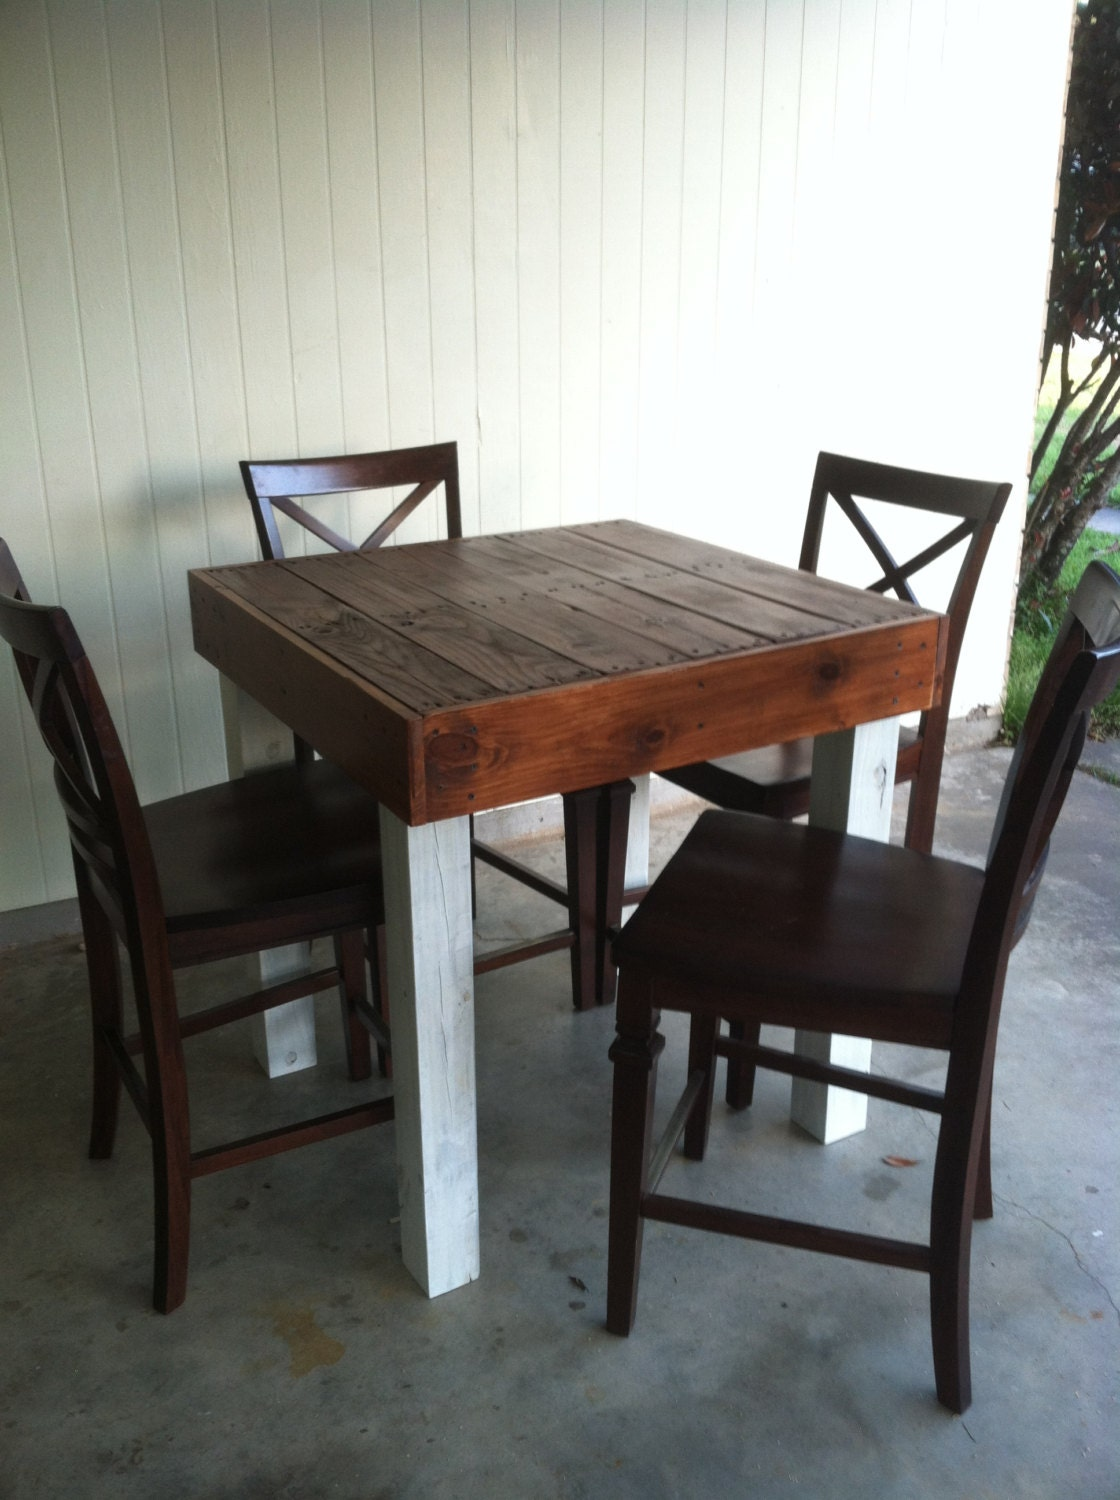 Dining Wood Table: Reclaimed Wood Dining Table Upcycled Pub Size Pallet Wood